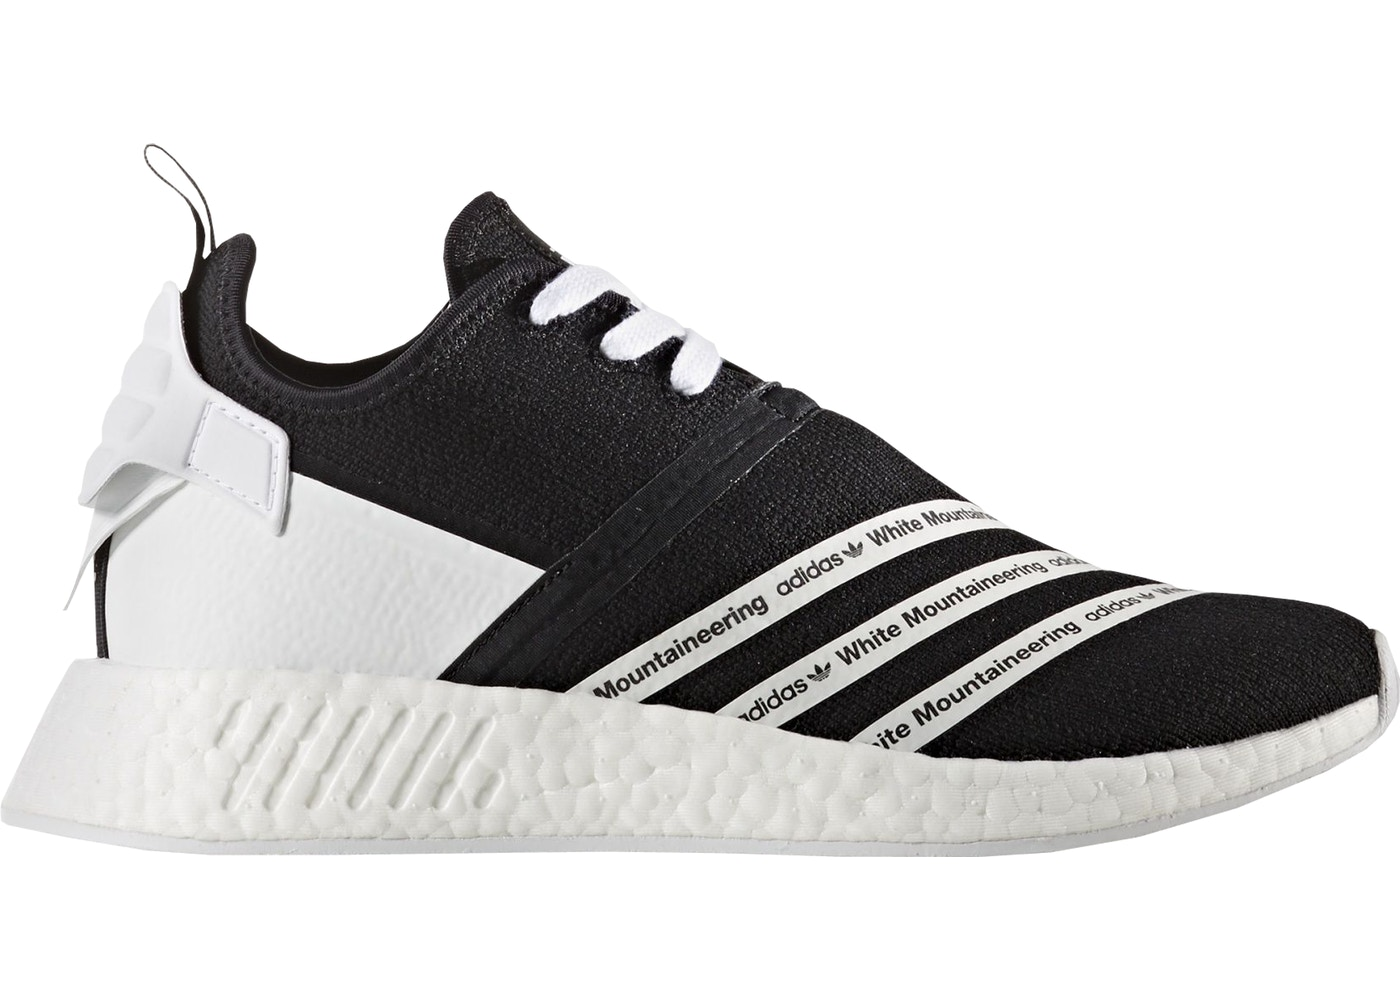 half off ce587 16acc adidas NMD R2 White Mountaineering Black White